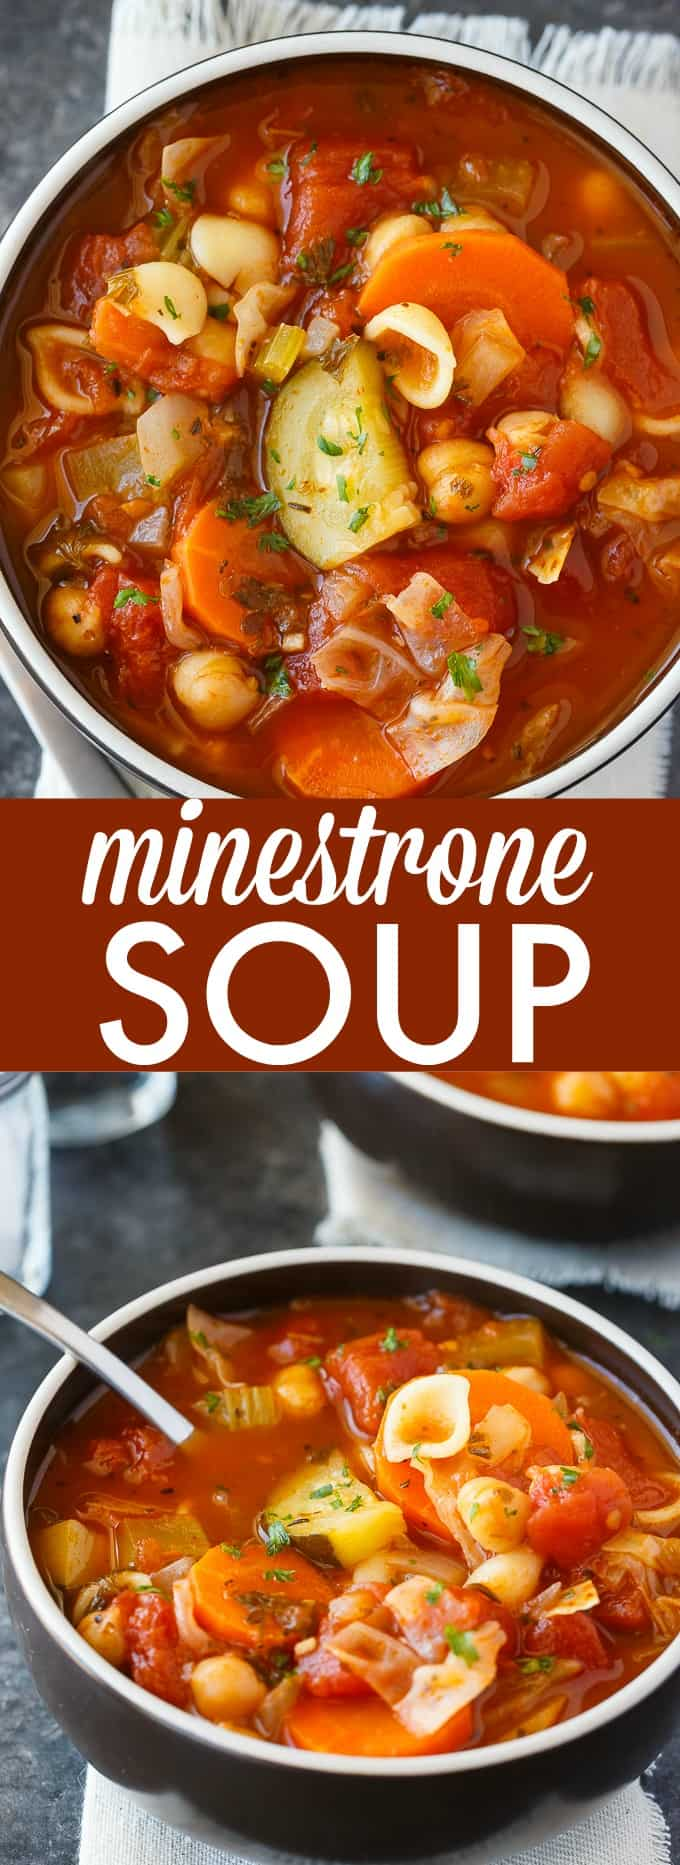 Minestrone Soup - Comfort food in a bowl. This easy family recipe is full of yummy veggies, chickpeas and baby shell pasta. So much flavor!